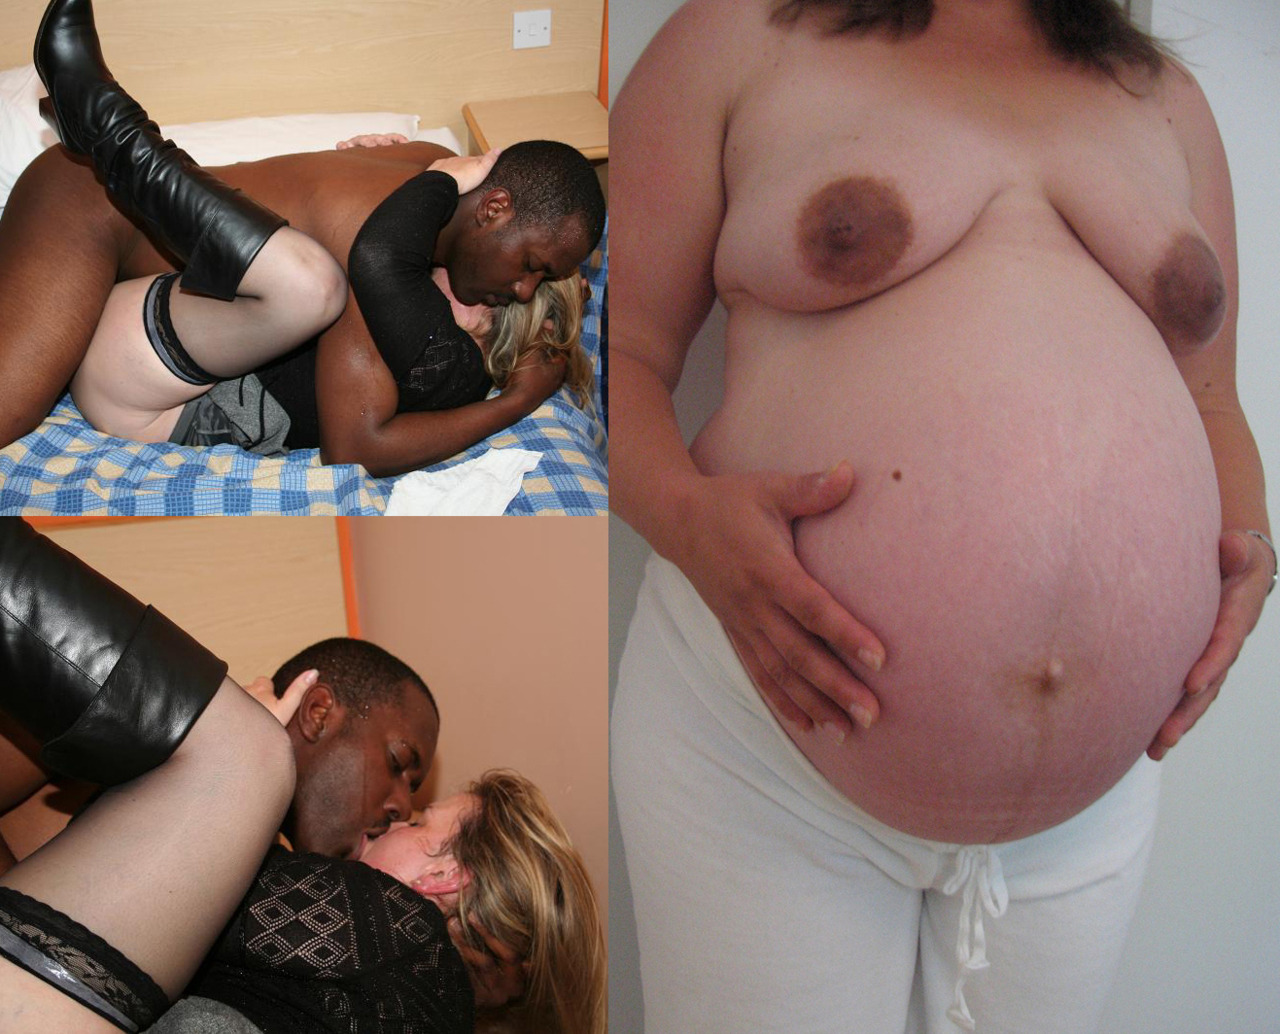 By got husband interracial lover pregnant watch who wife